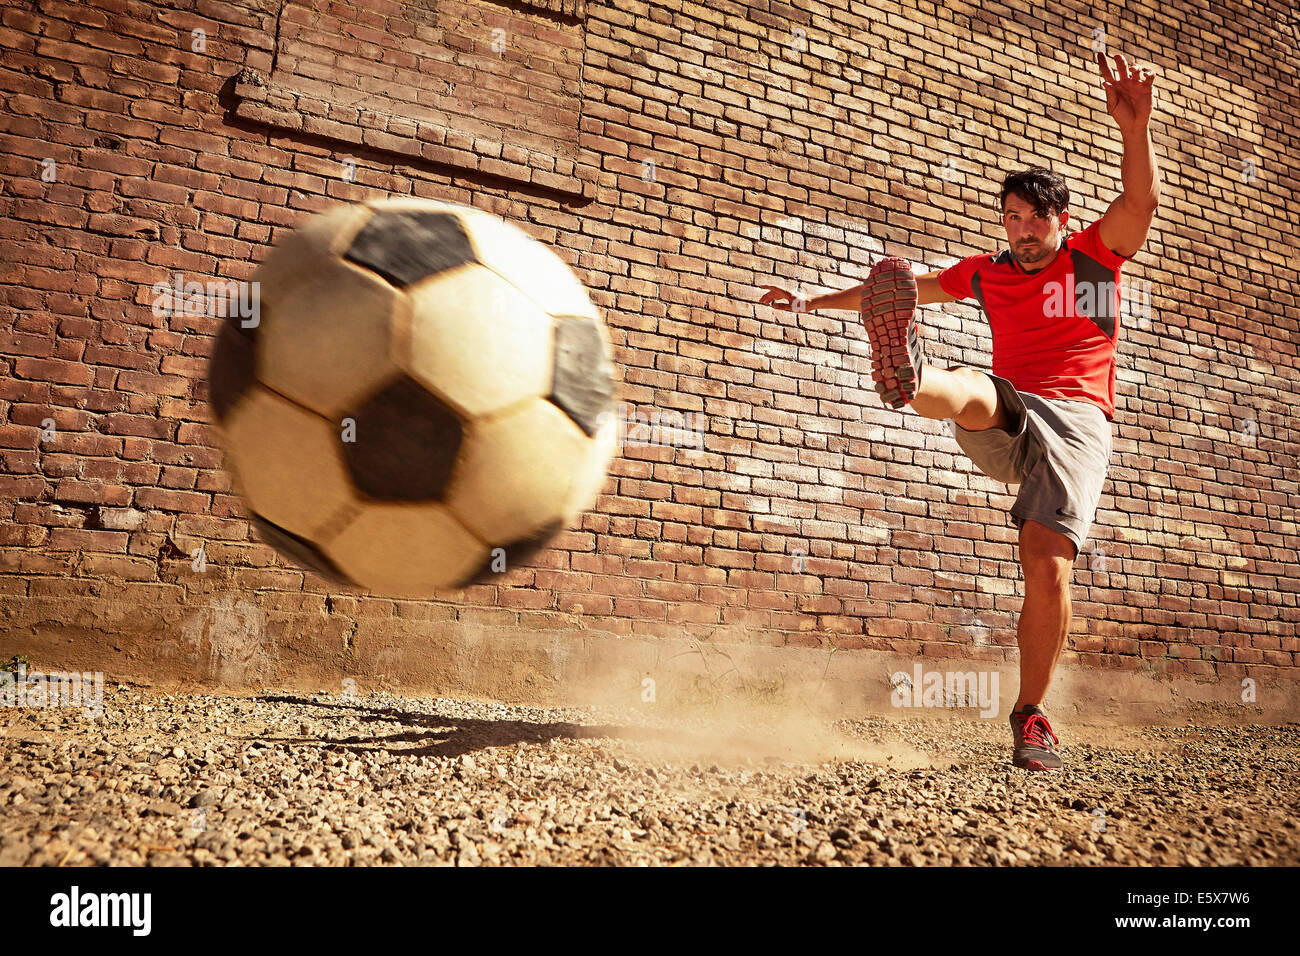 Young man kicking soccer ball on wasteland - Stock Image